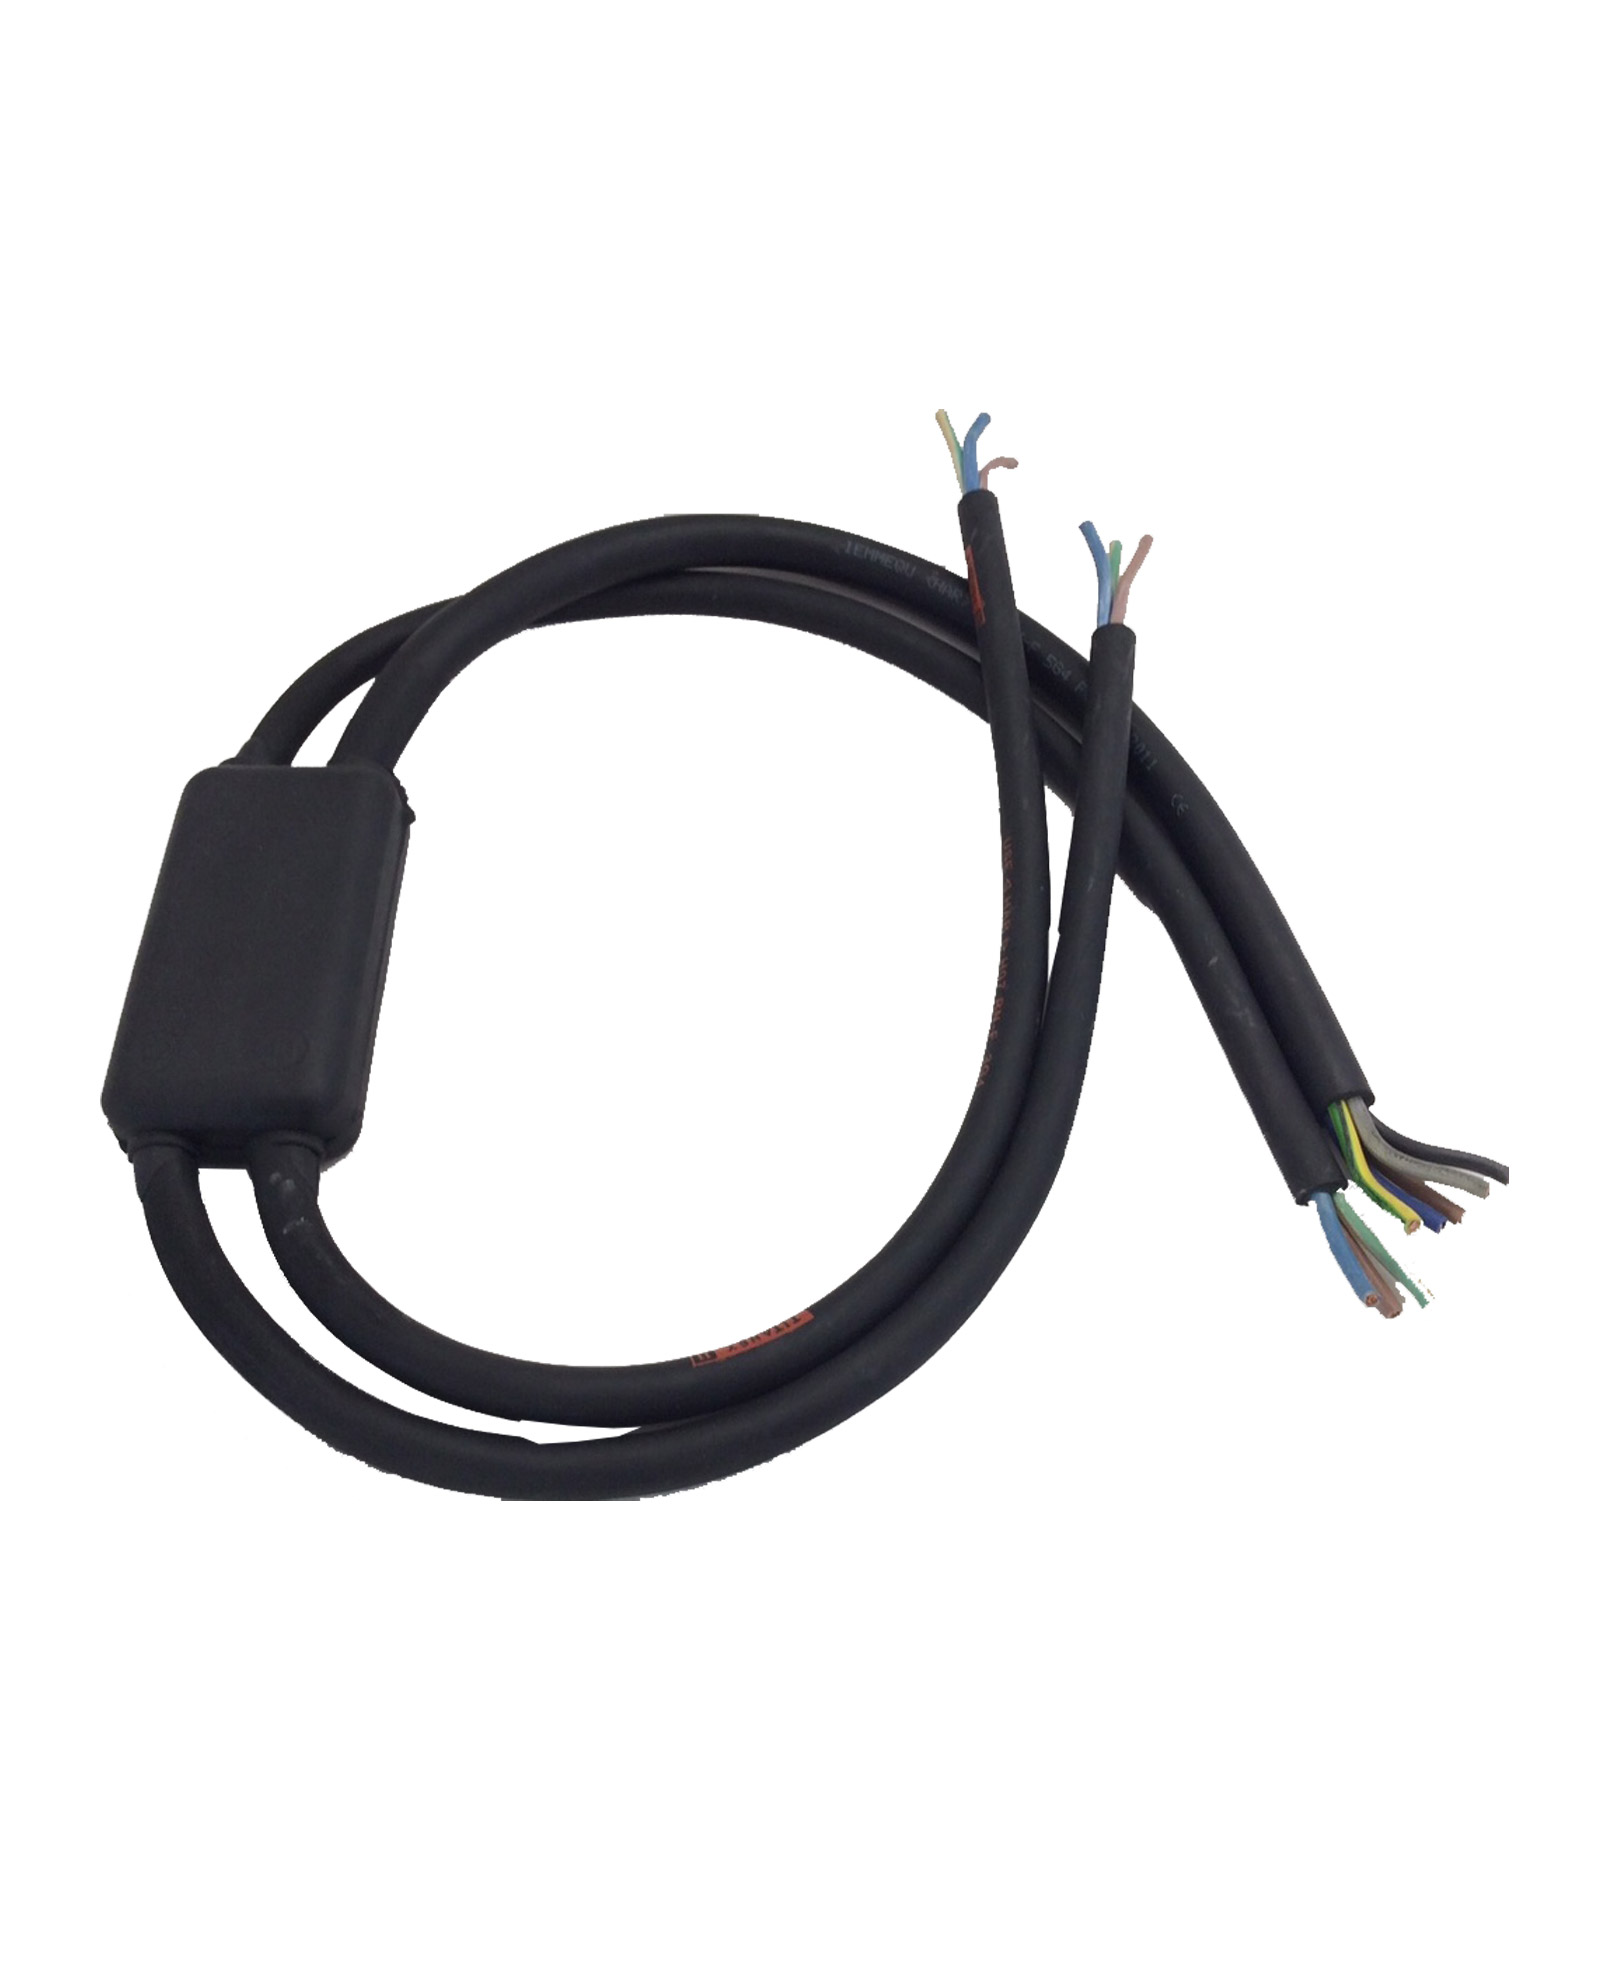 3 Phase 3 Way Break Out To Single Phase 5 Core 4.0mm Rubber HO7 Cable